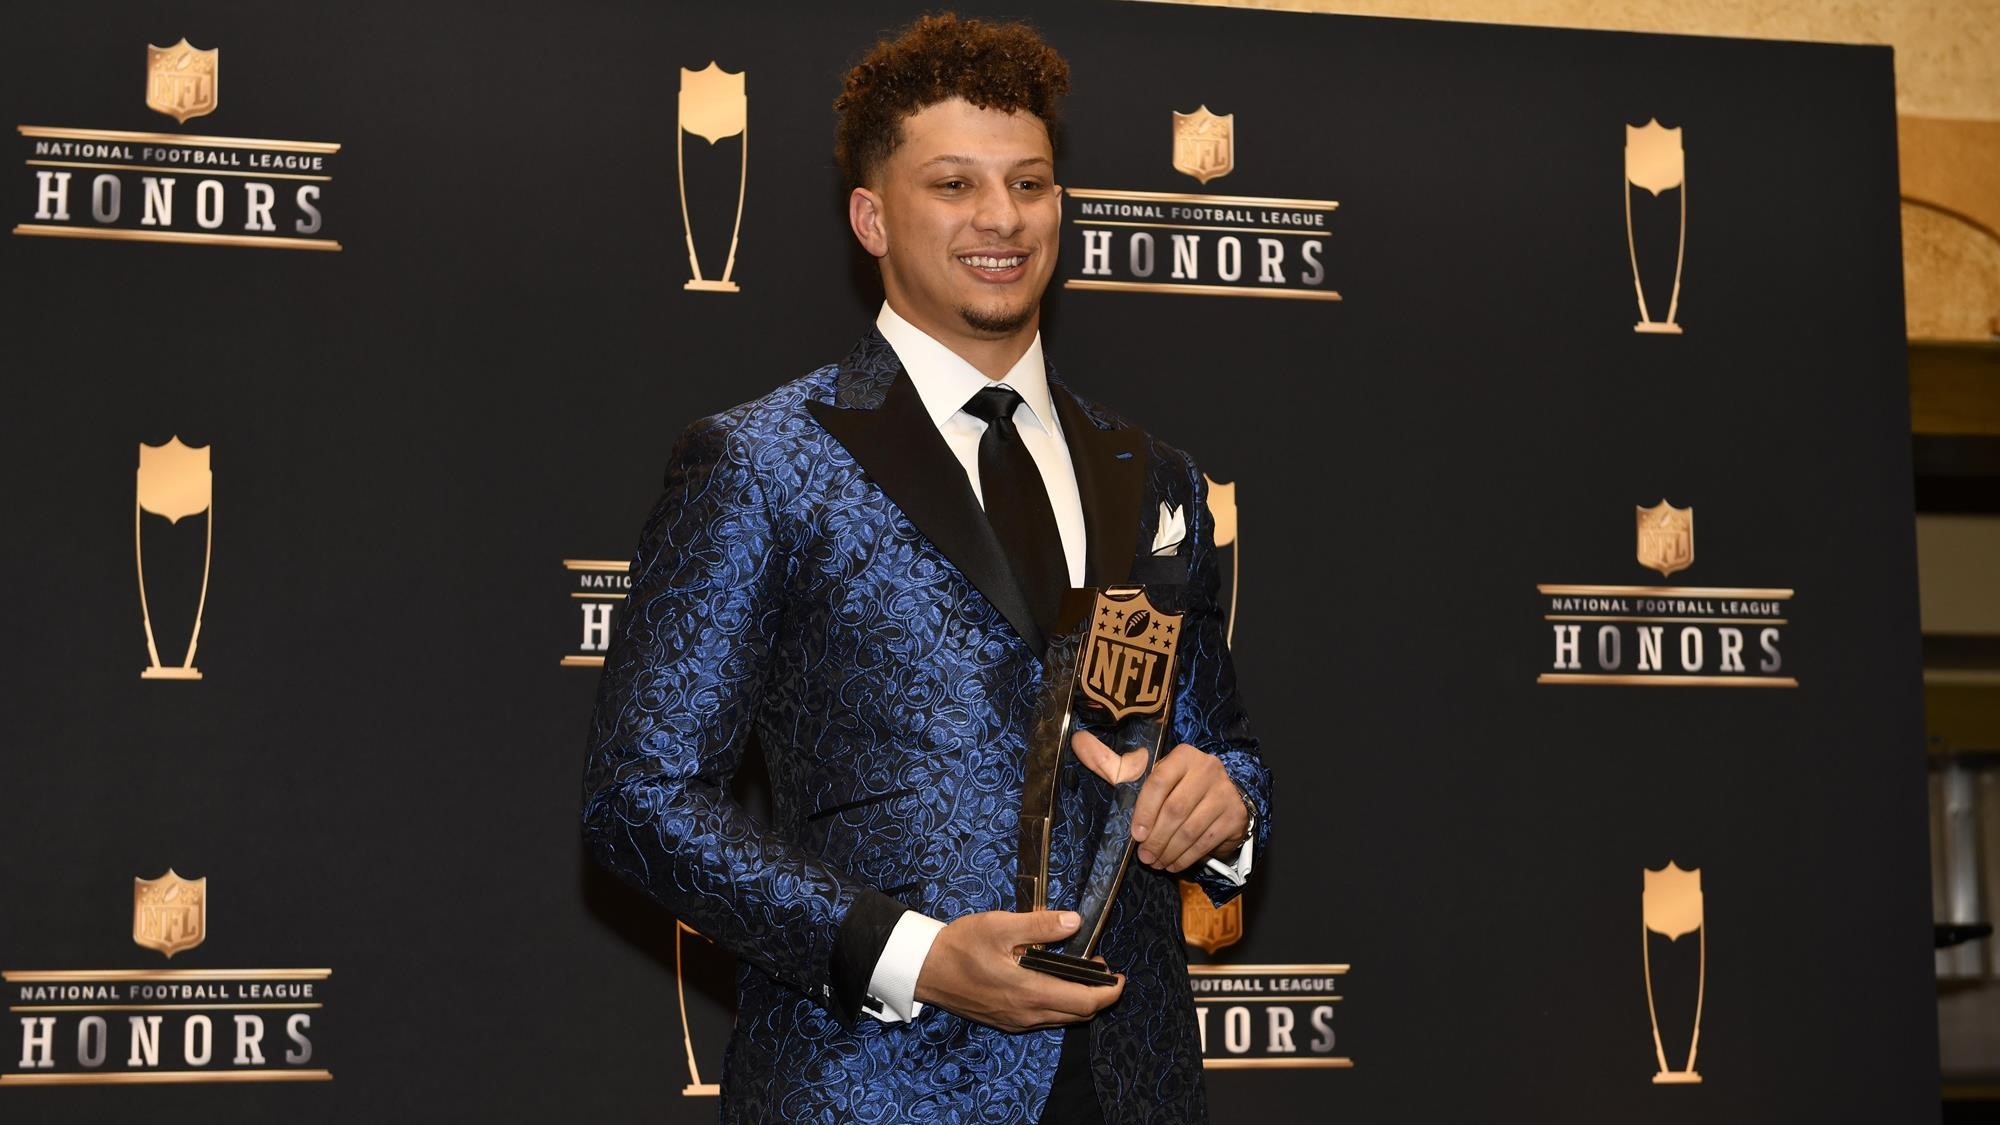 ce4732f5d0cf Mahomes  Impressive Debut Ends in NFL MVP Honors - Texas Tech ...